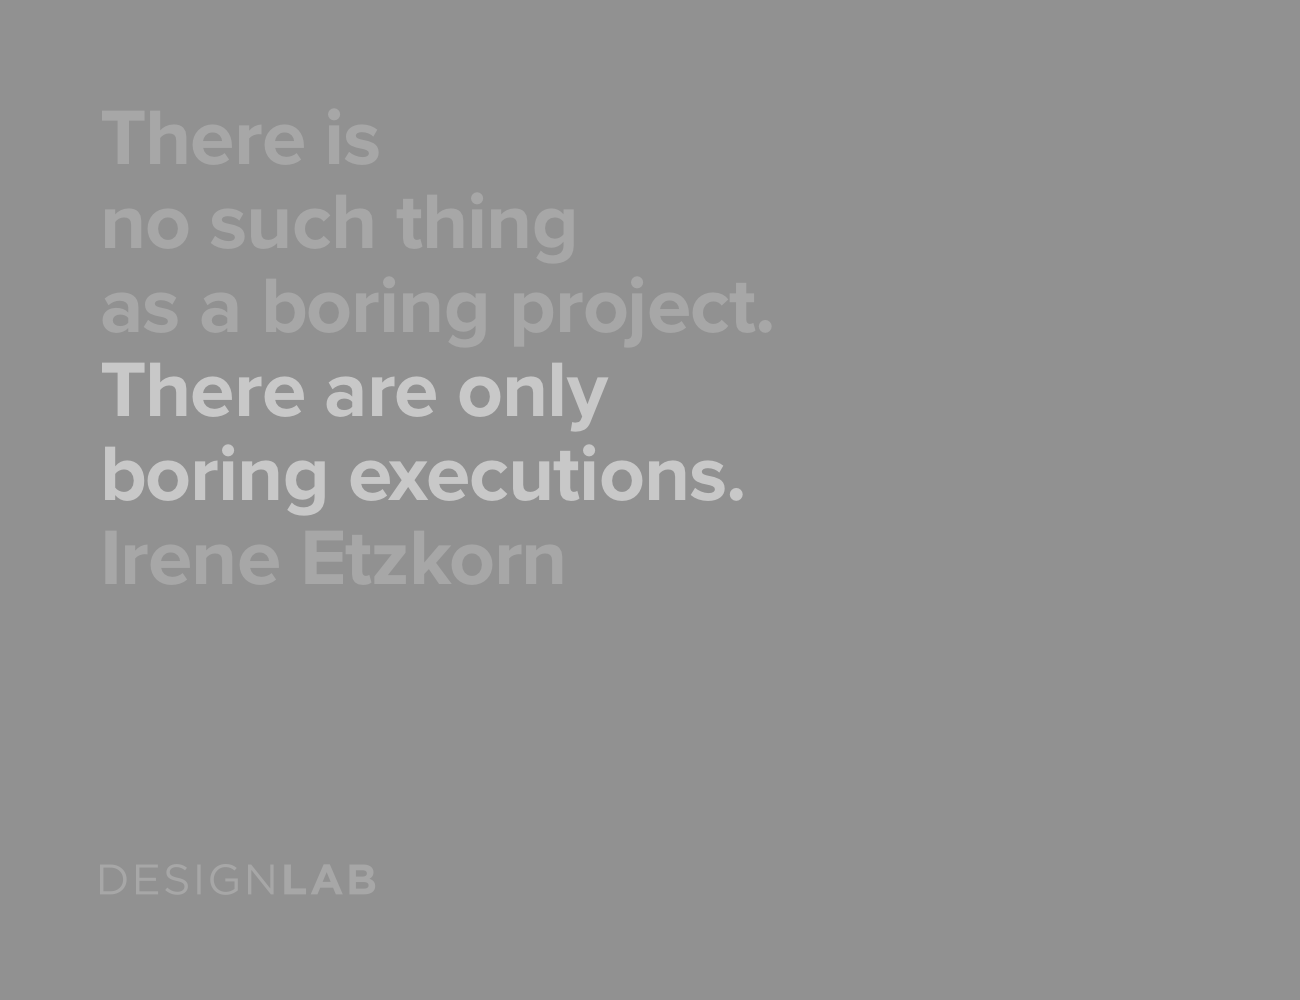 There is no such thing as a boring project. Only boring executions. Irene Etzkorn